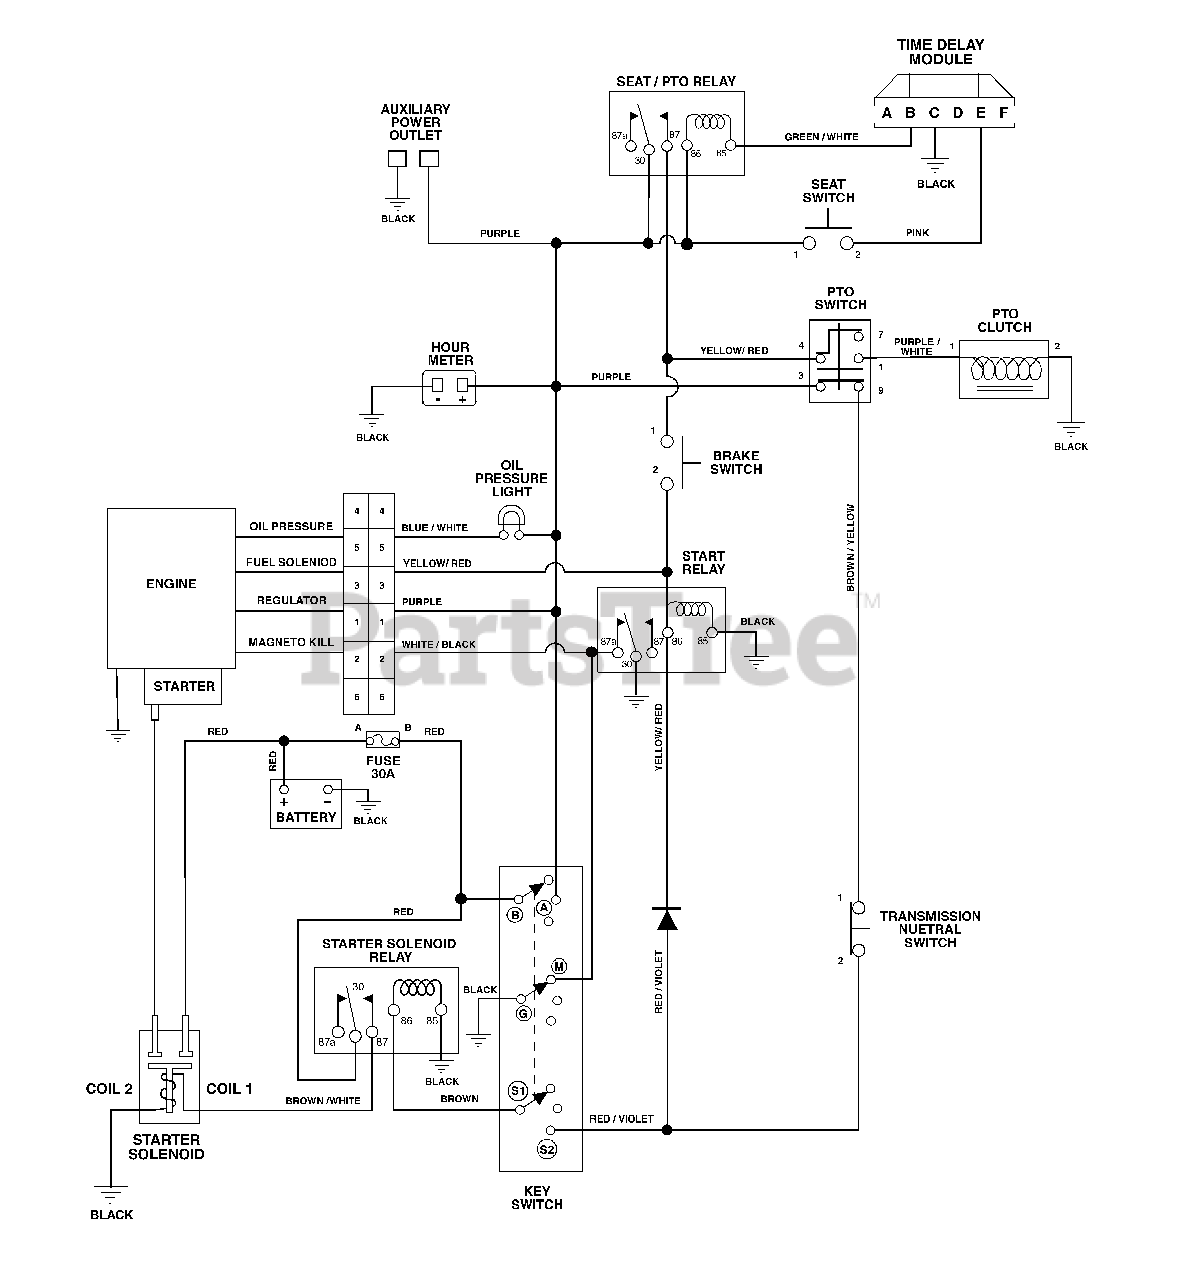 [DIAGRAM_38EU]  Gravely 990019 (PM 310) - Gravely Pro-Master Zero-Turn Mower, 21hp Briggs &  Stratton (SN: 000101 & Above) Wiring Diagram Parts Lookup with Diagrams |  PartsTree | Briggs Stratton Wiring Diagram |  | PartsTree